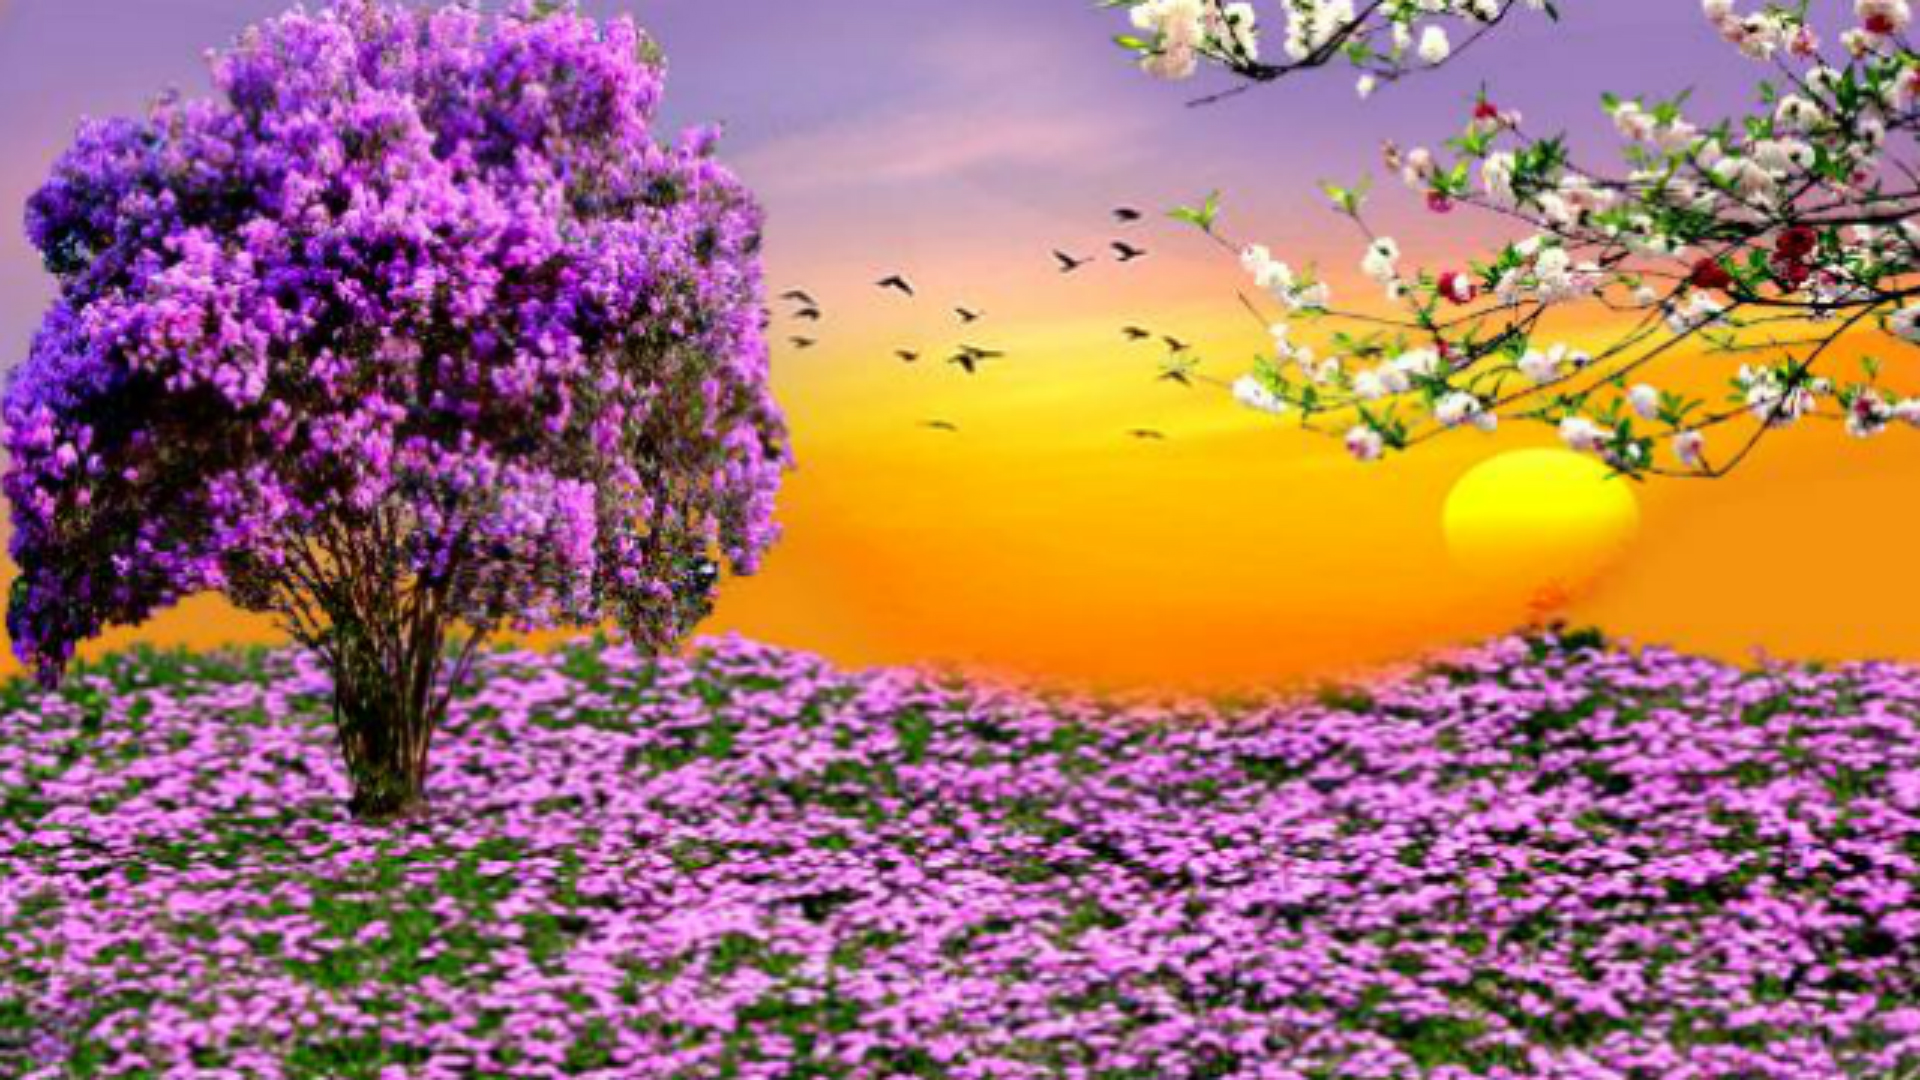 flowers spring wallpaper 1920x1080 - photo #14